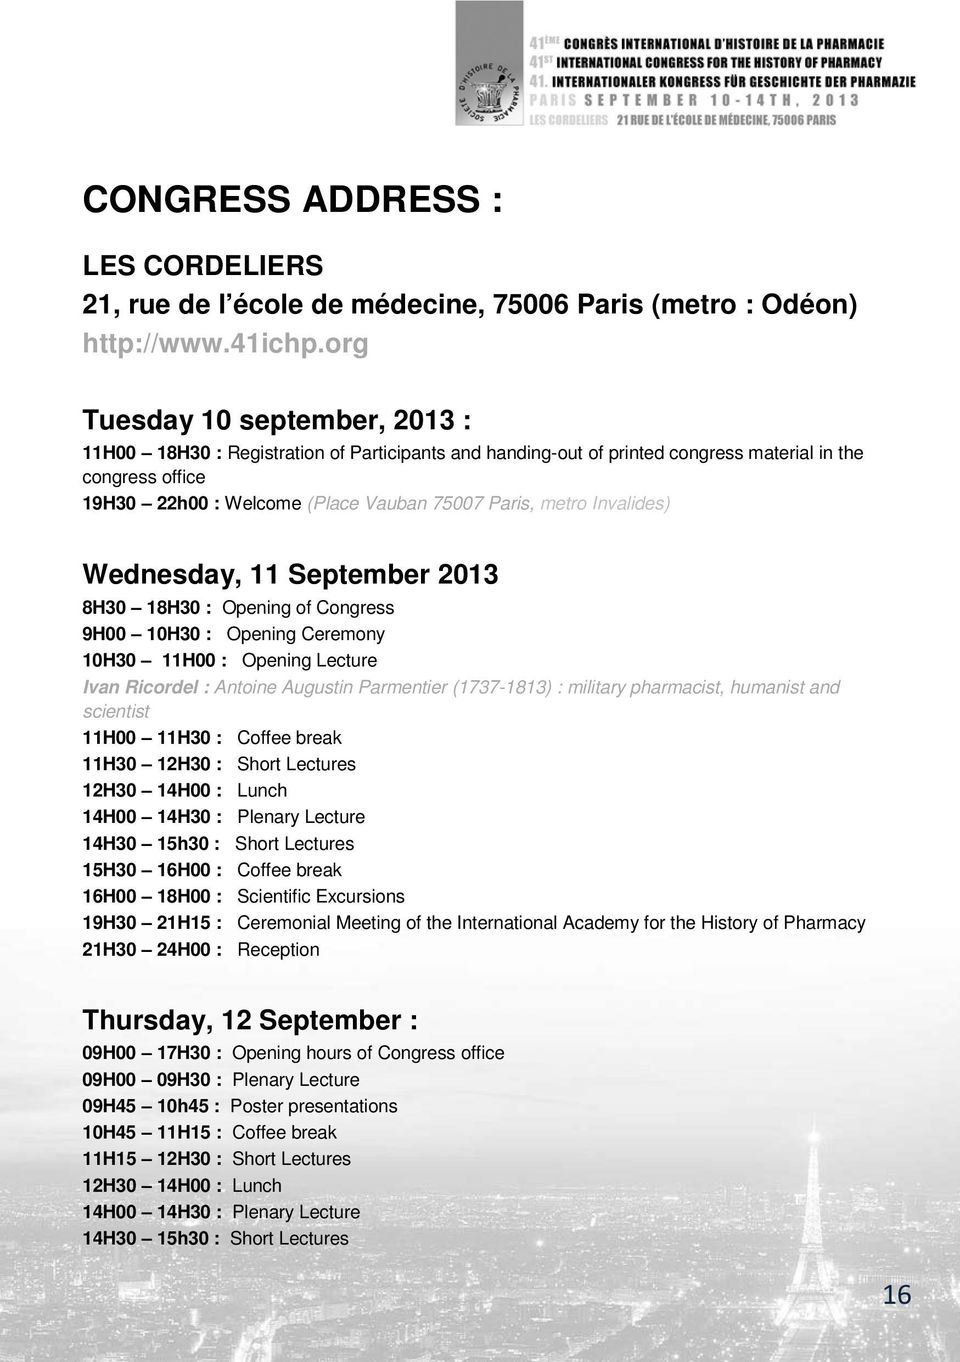 Invalides) Wednesday, 11 September 2013 8H30 18H30 : Opening of Congress 9H00 10H30 : Opening Ceremony 10H30 11H00 : Opening Lecture Ivan Ricordel : Antoine Augustin Parmentier (1737-1813) : military